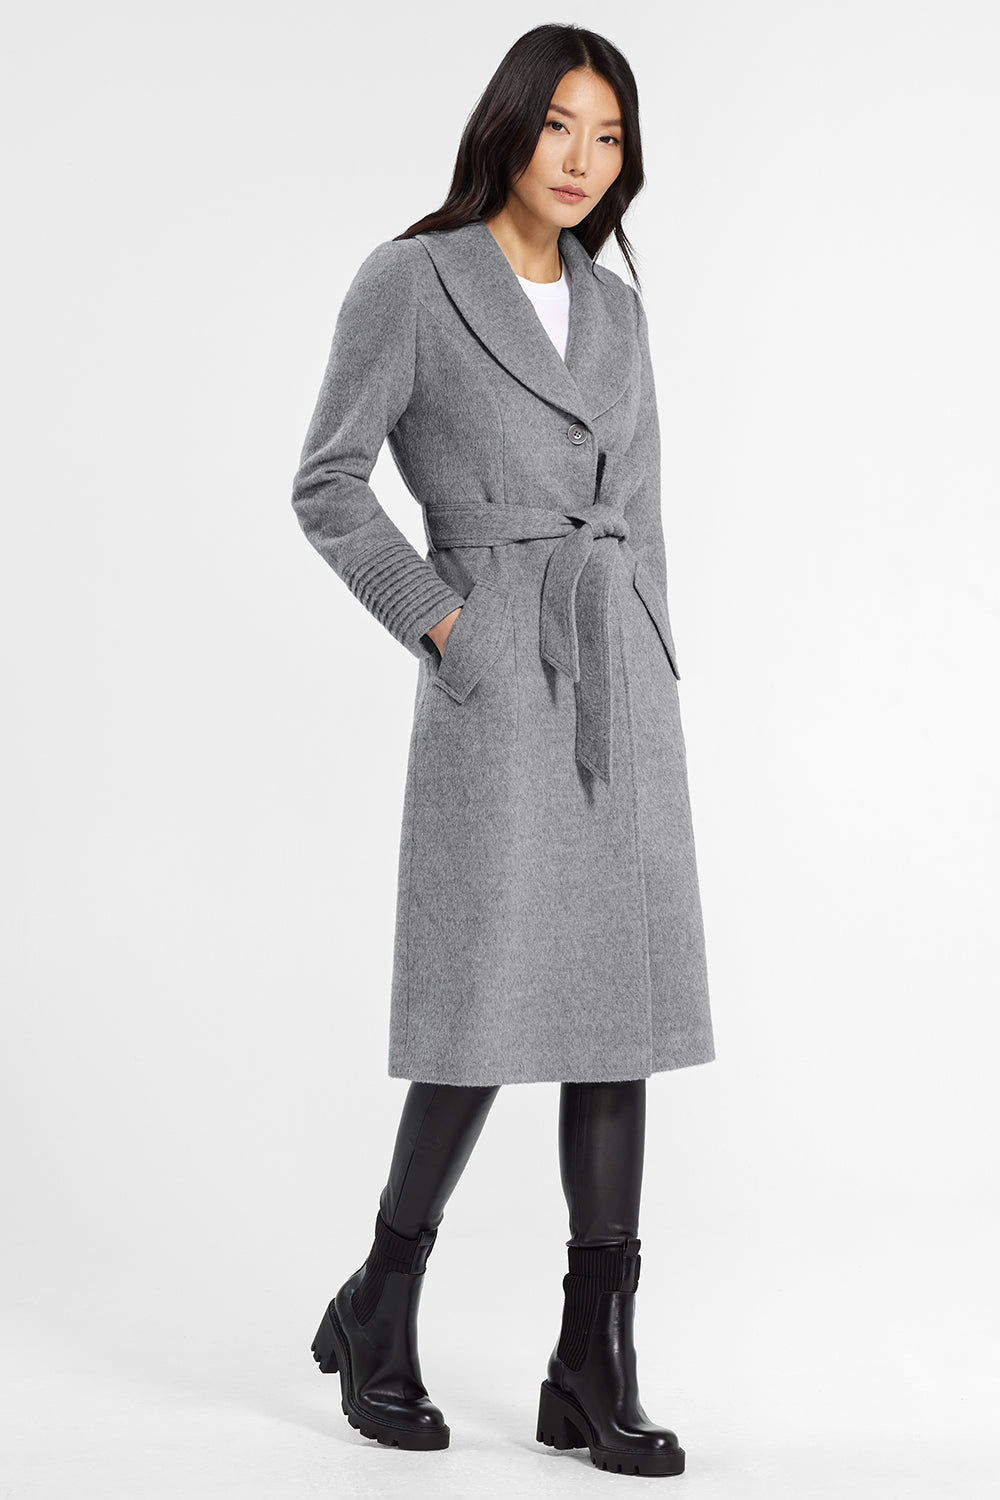 Sentaler Classic Long Coat with Shawl Collar featured in Baby Alpaca and available in Shale Grey. Seen from side.